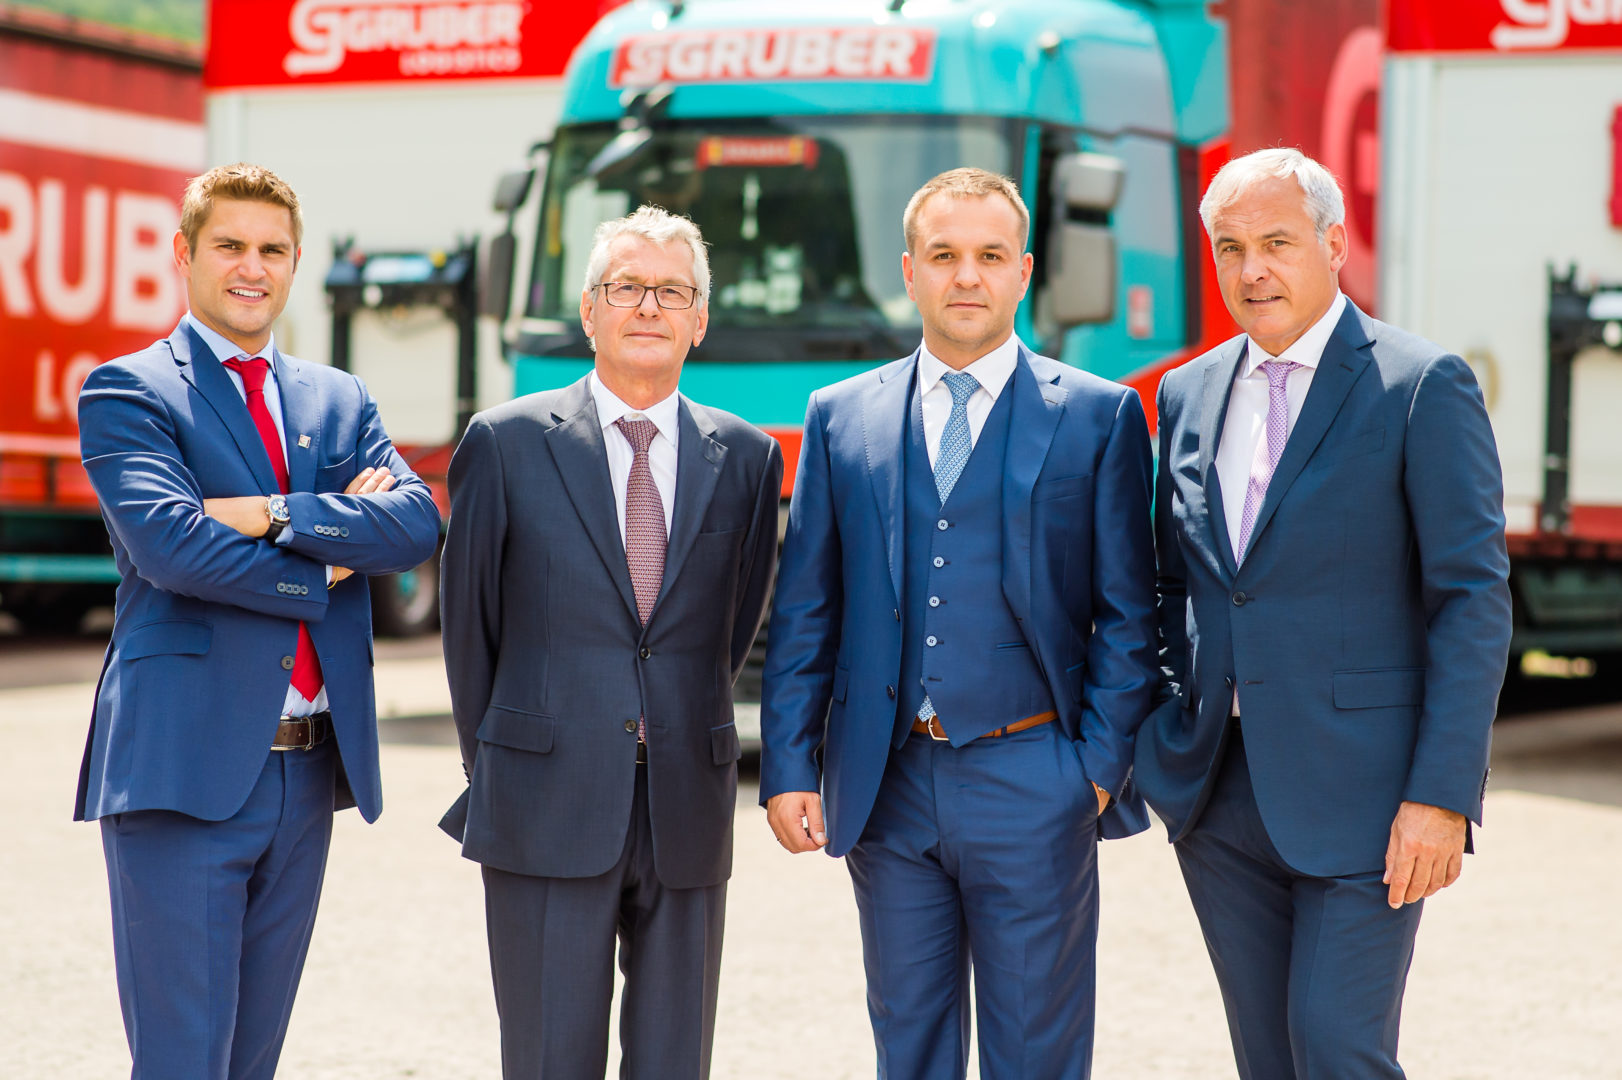 GRUBER Logistics closes 2018 with a turnover of 344 million euros